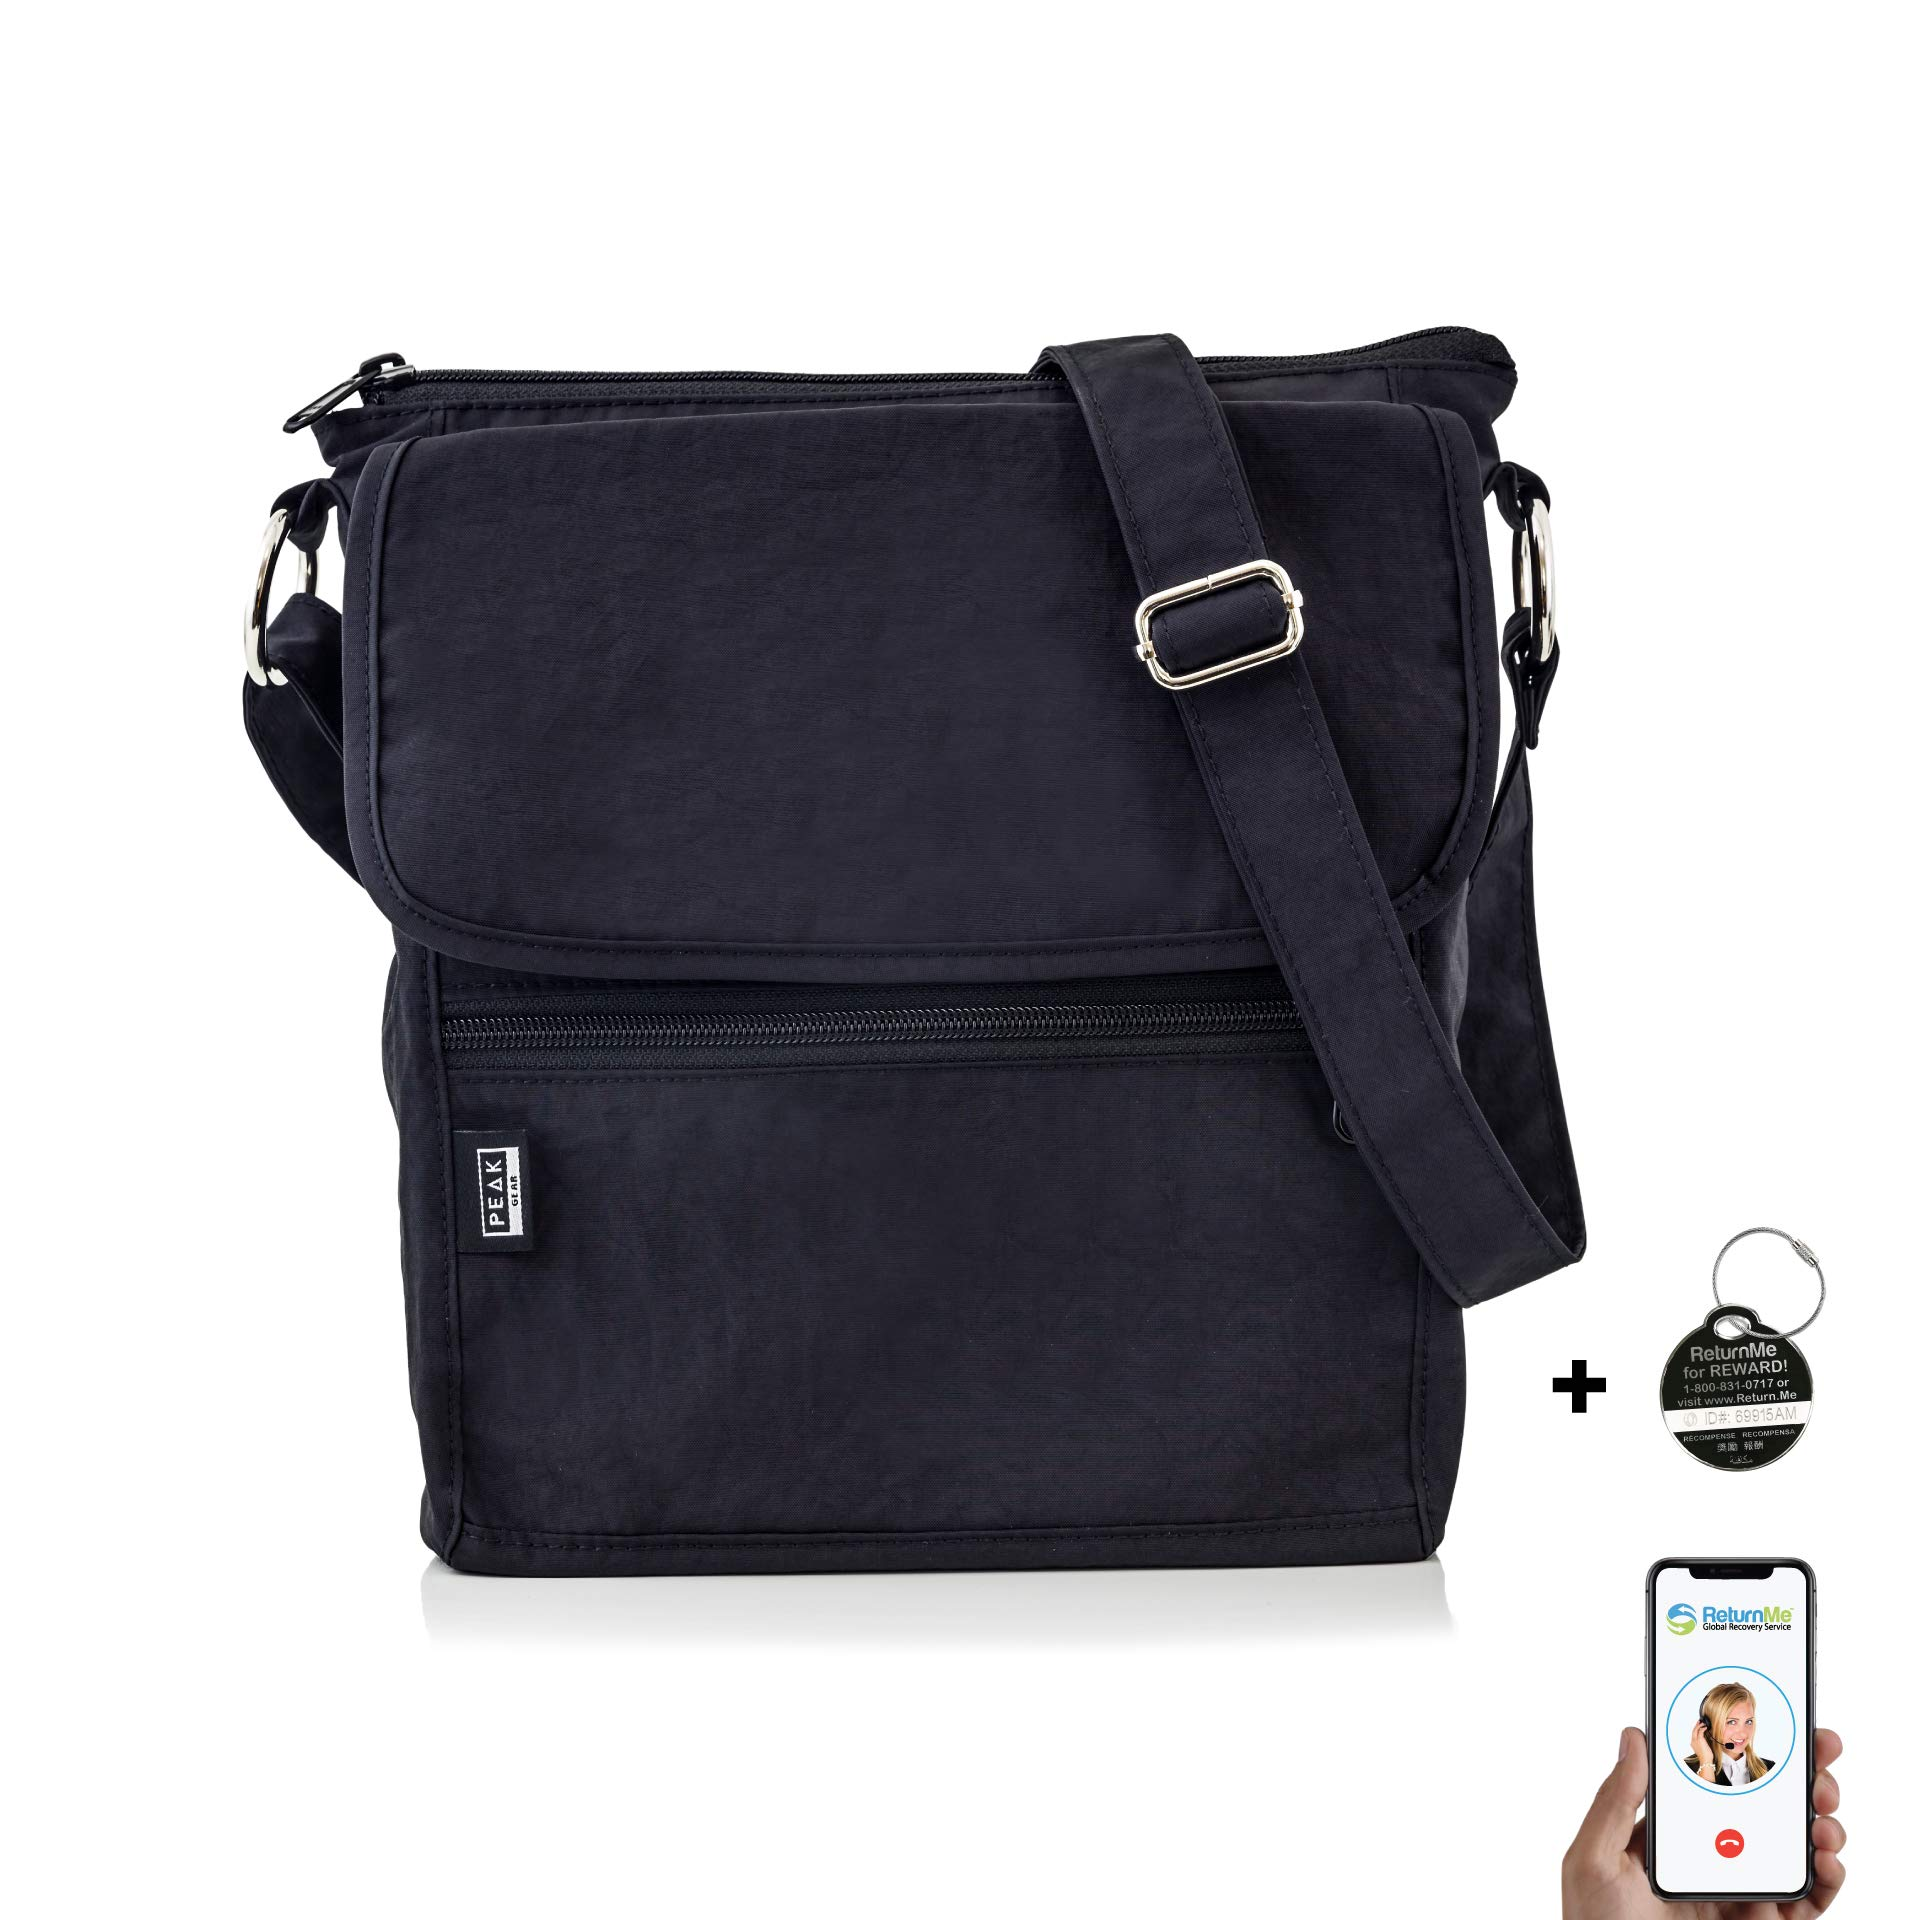 d0d979a4c66c Travel Crossbody Purse - Hidden RFID Pocket - Includes Lifetime Lost &  Found ID product image